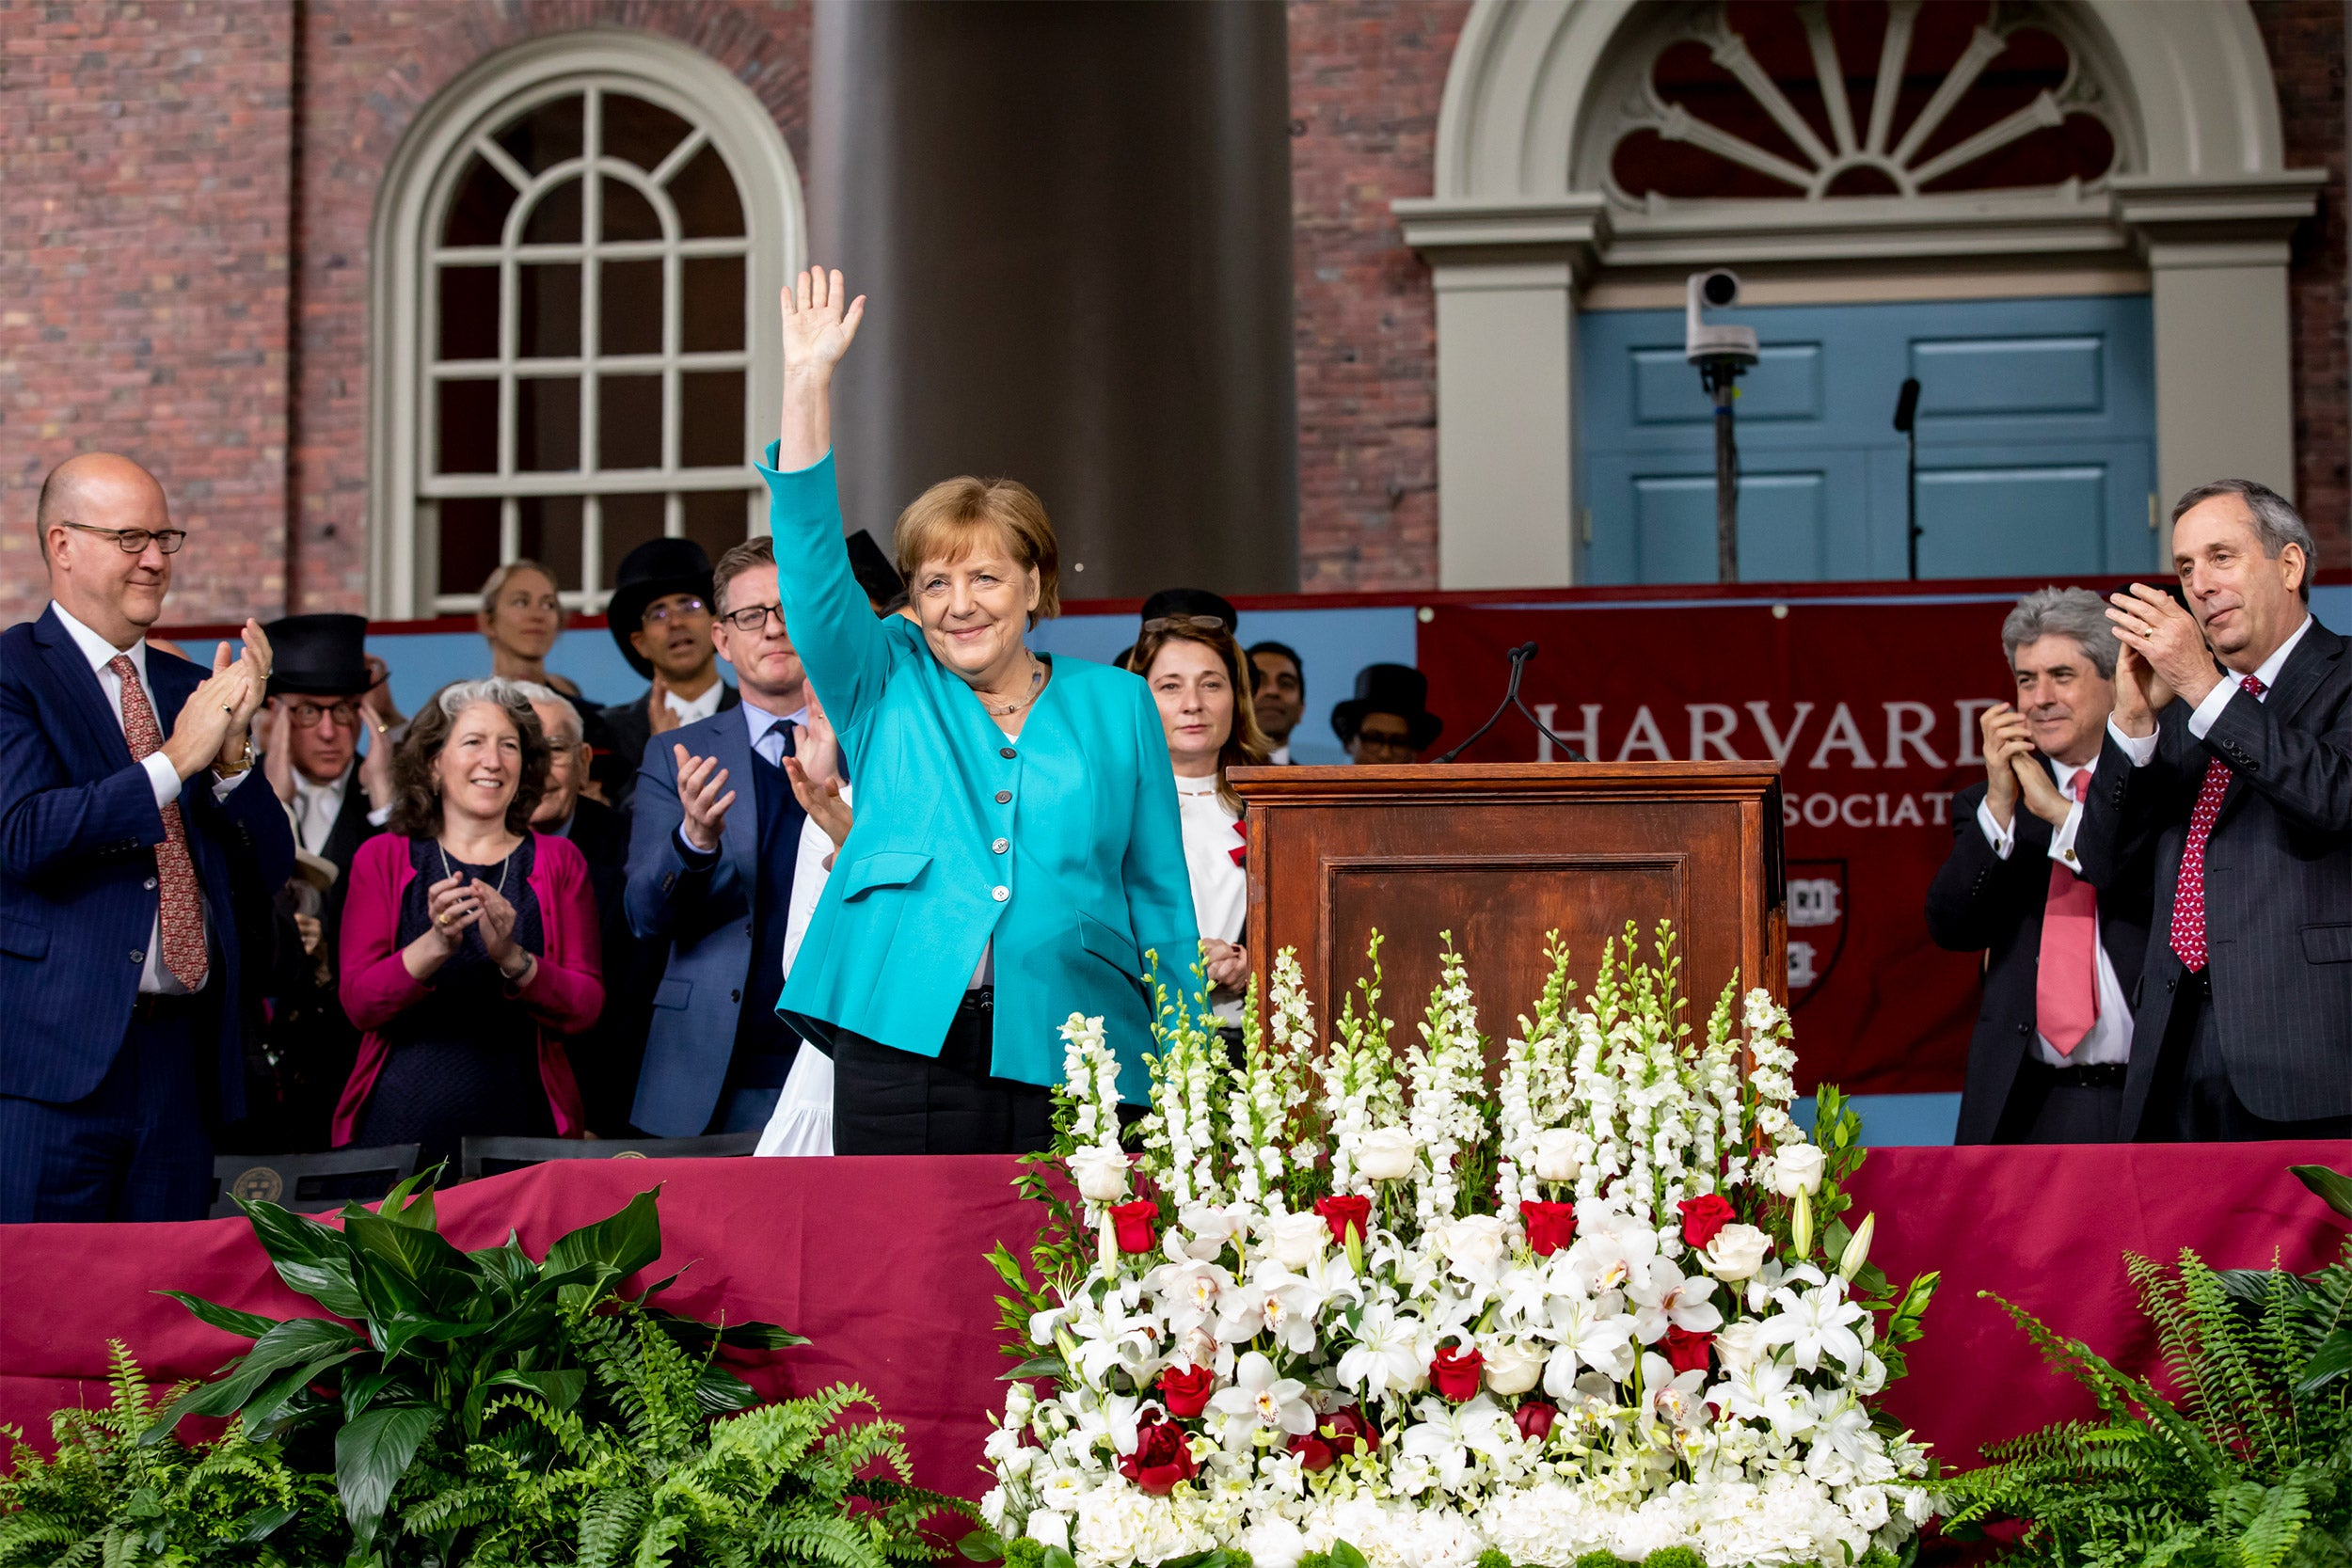 German Chancellor Angela Merkel waving to the crowd.